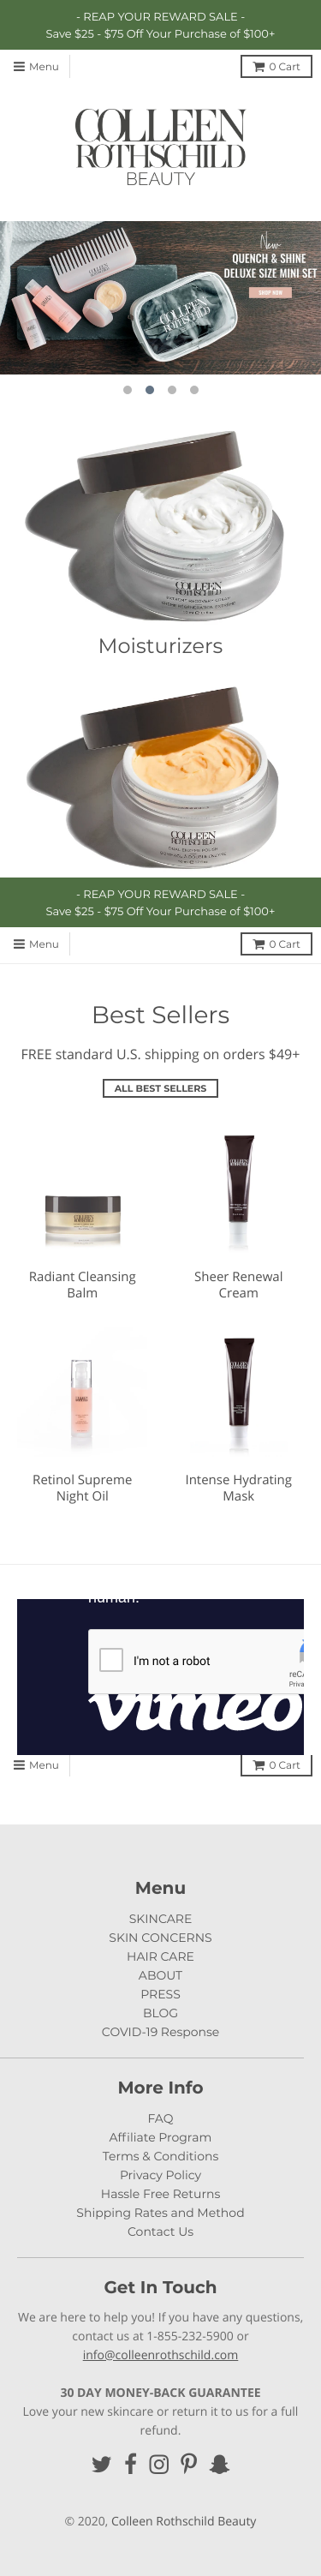 Colleen Rothschild Beauty Coupon